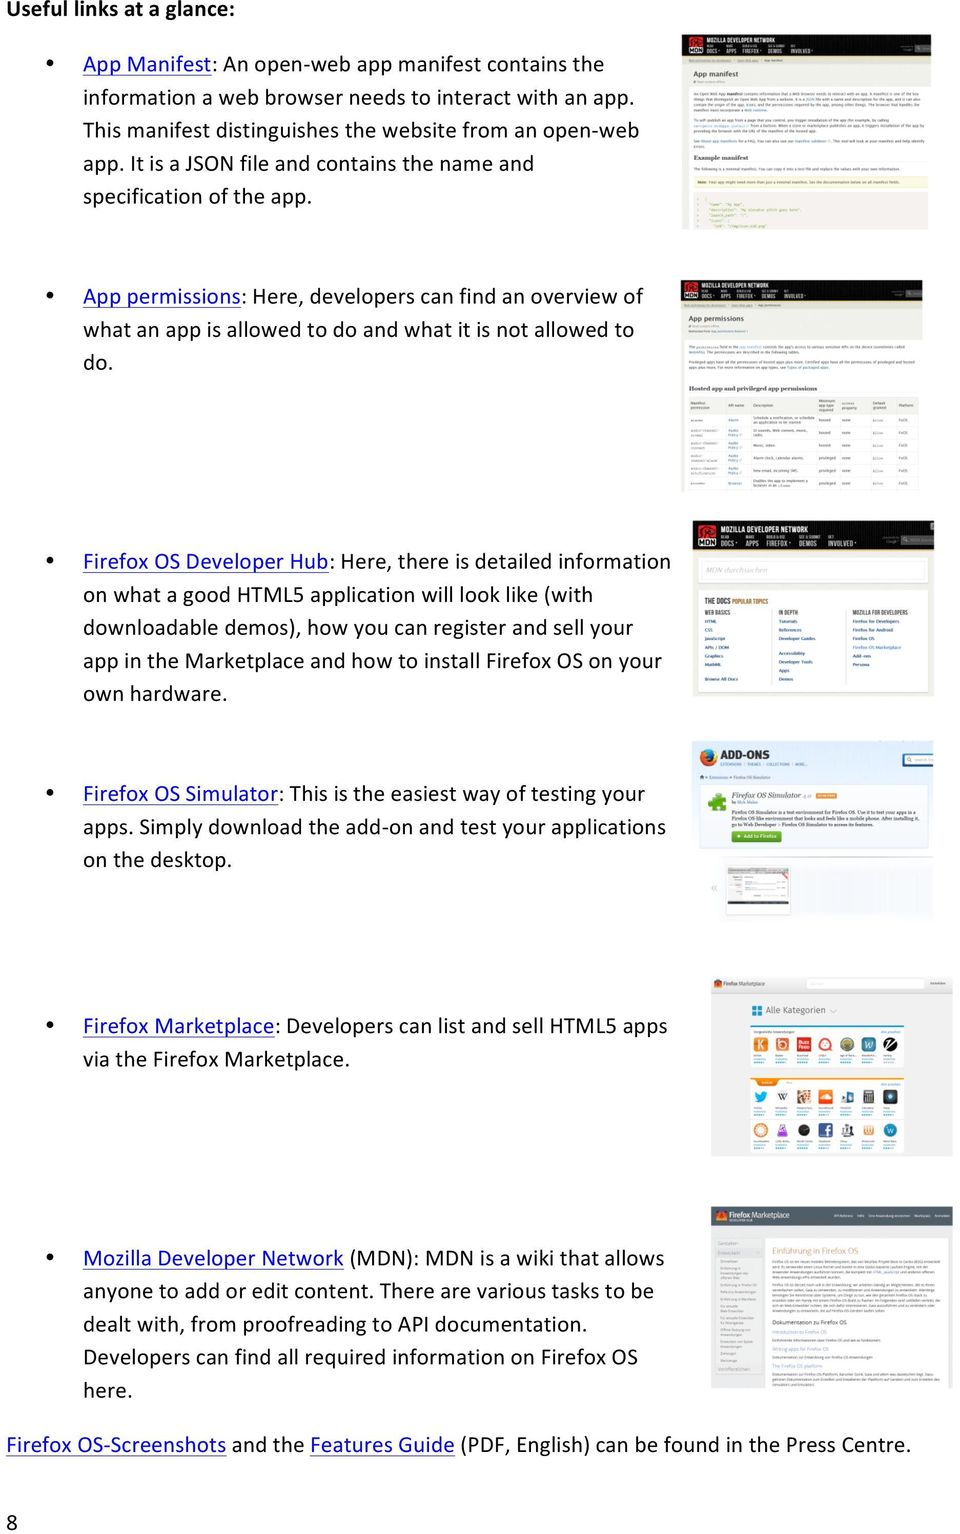 Firefox OS Developer Hub: Here, there is detailed information on what a good HTML5 application will look like (with downloadable demos), how you can register and sell your app in the Marketplace and